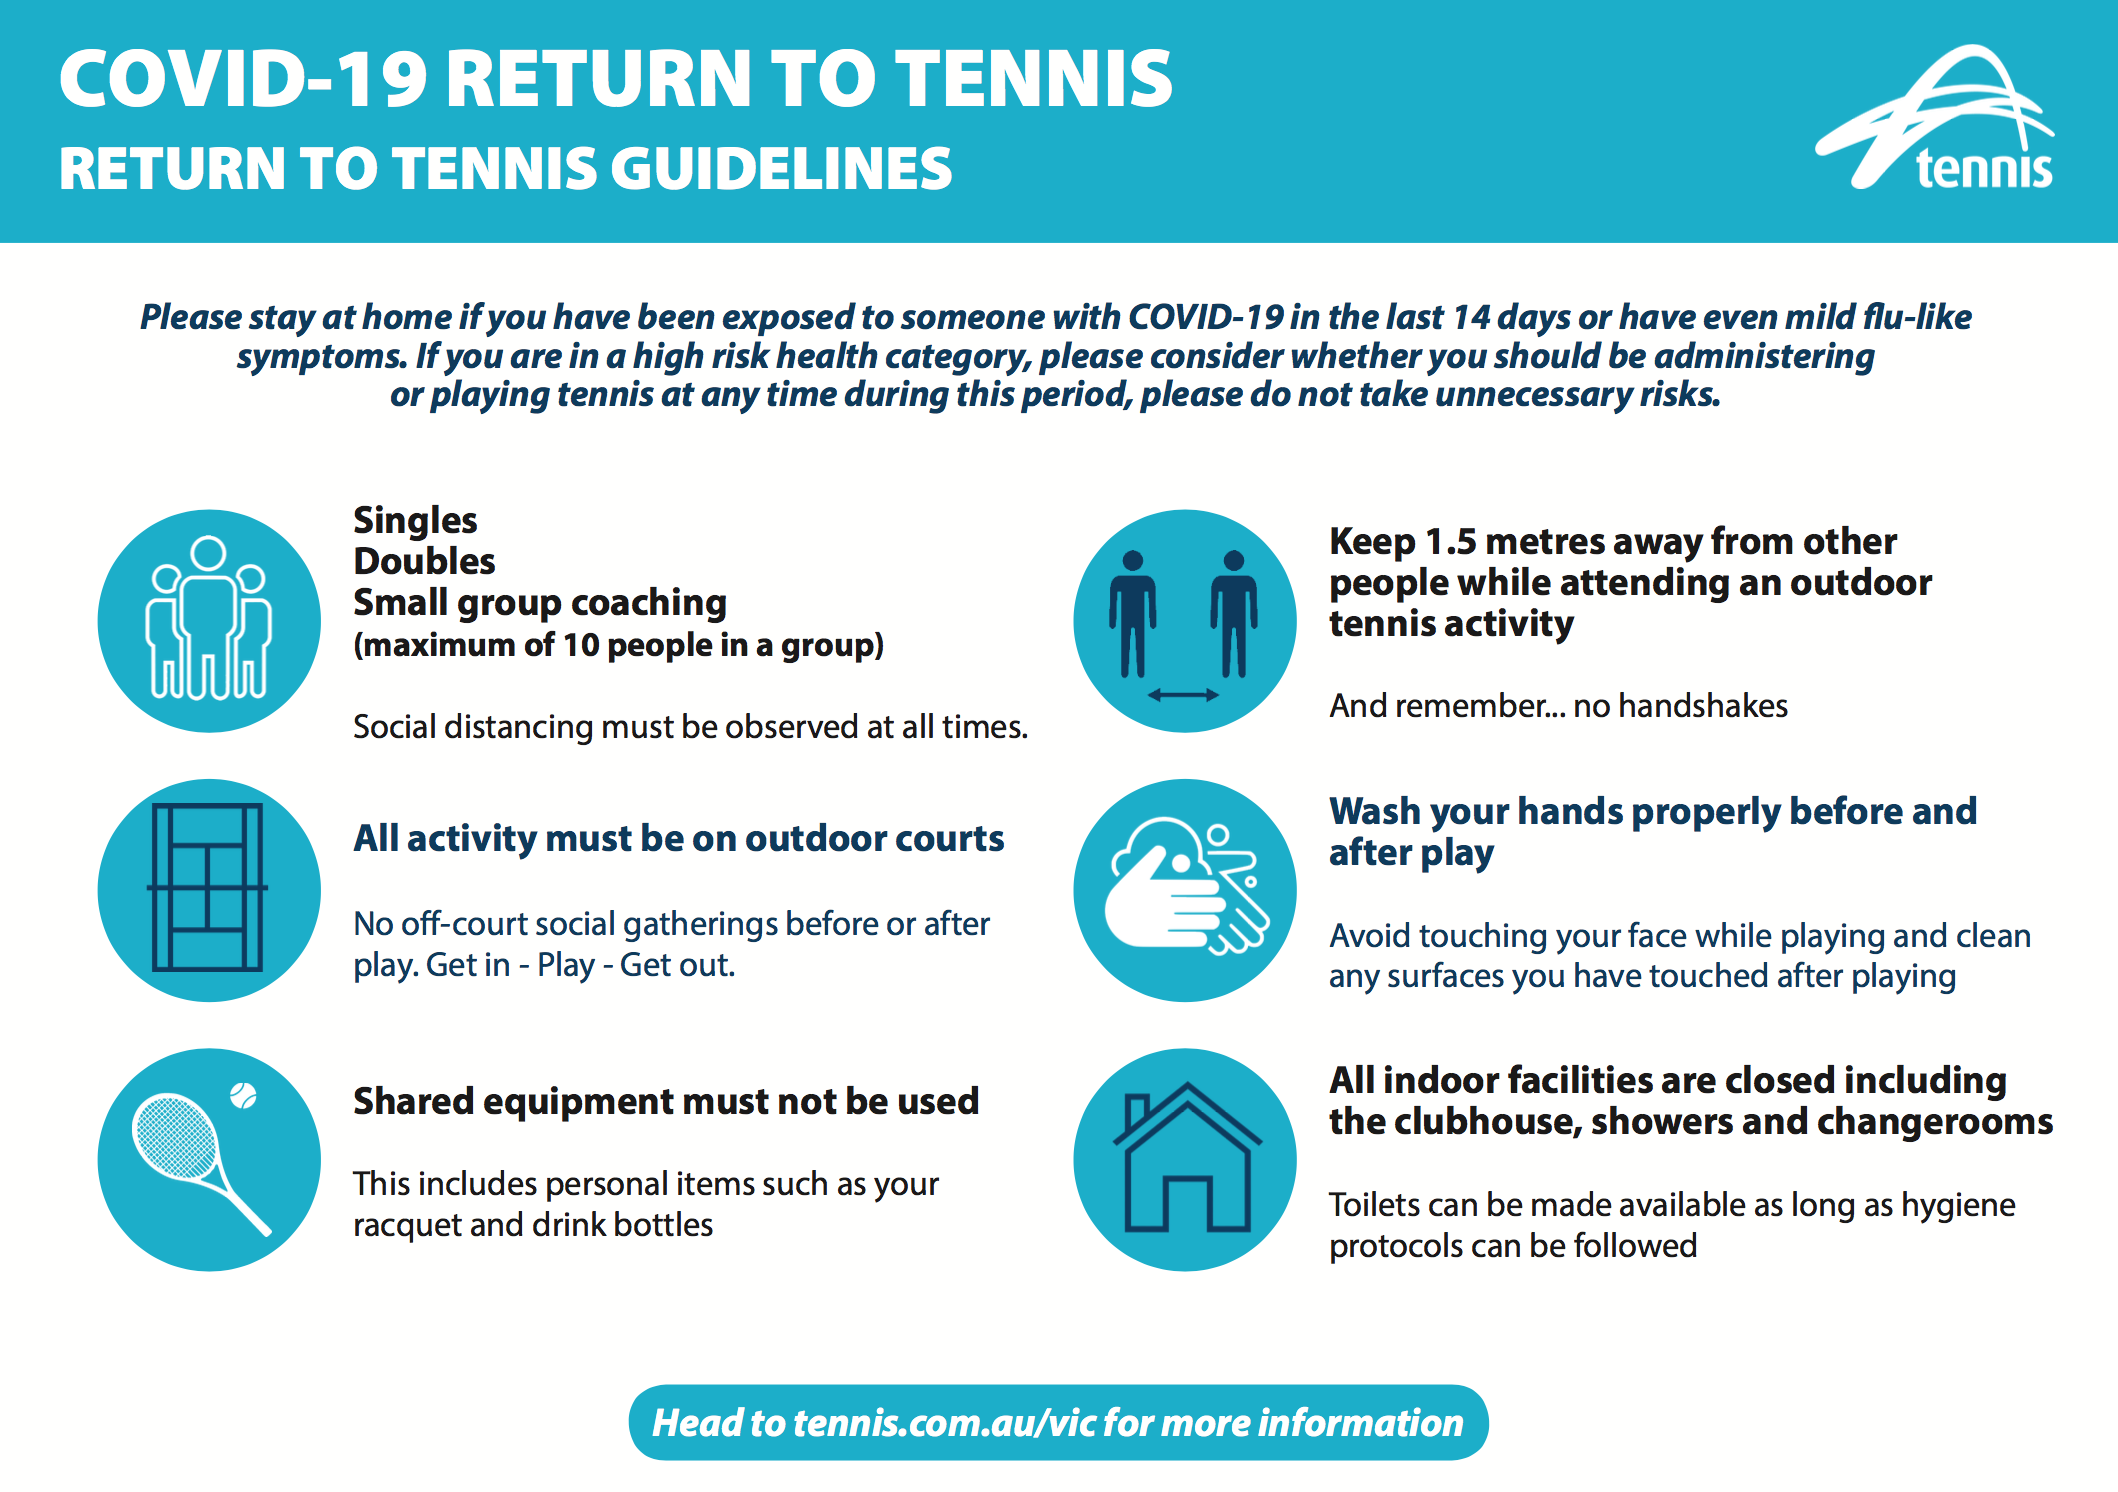 Return to Tennis Guideline